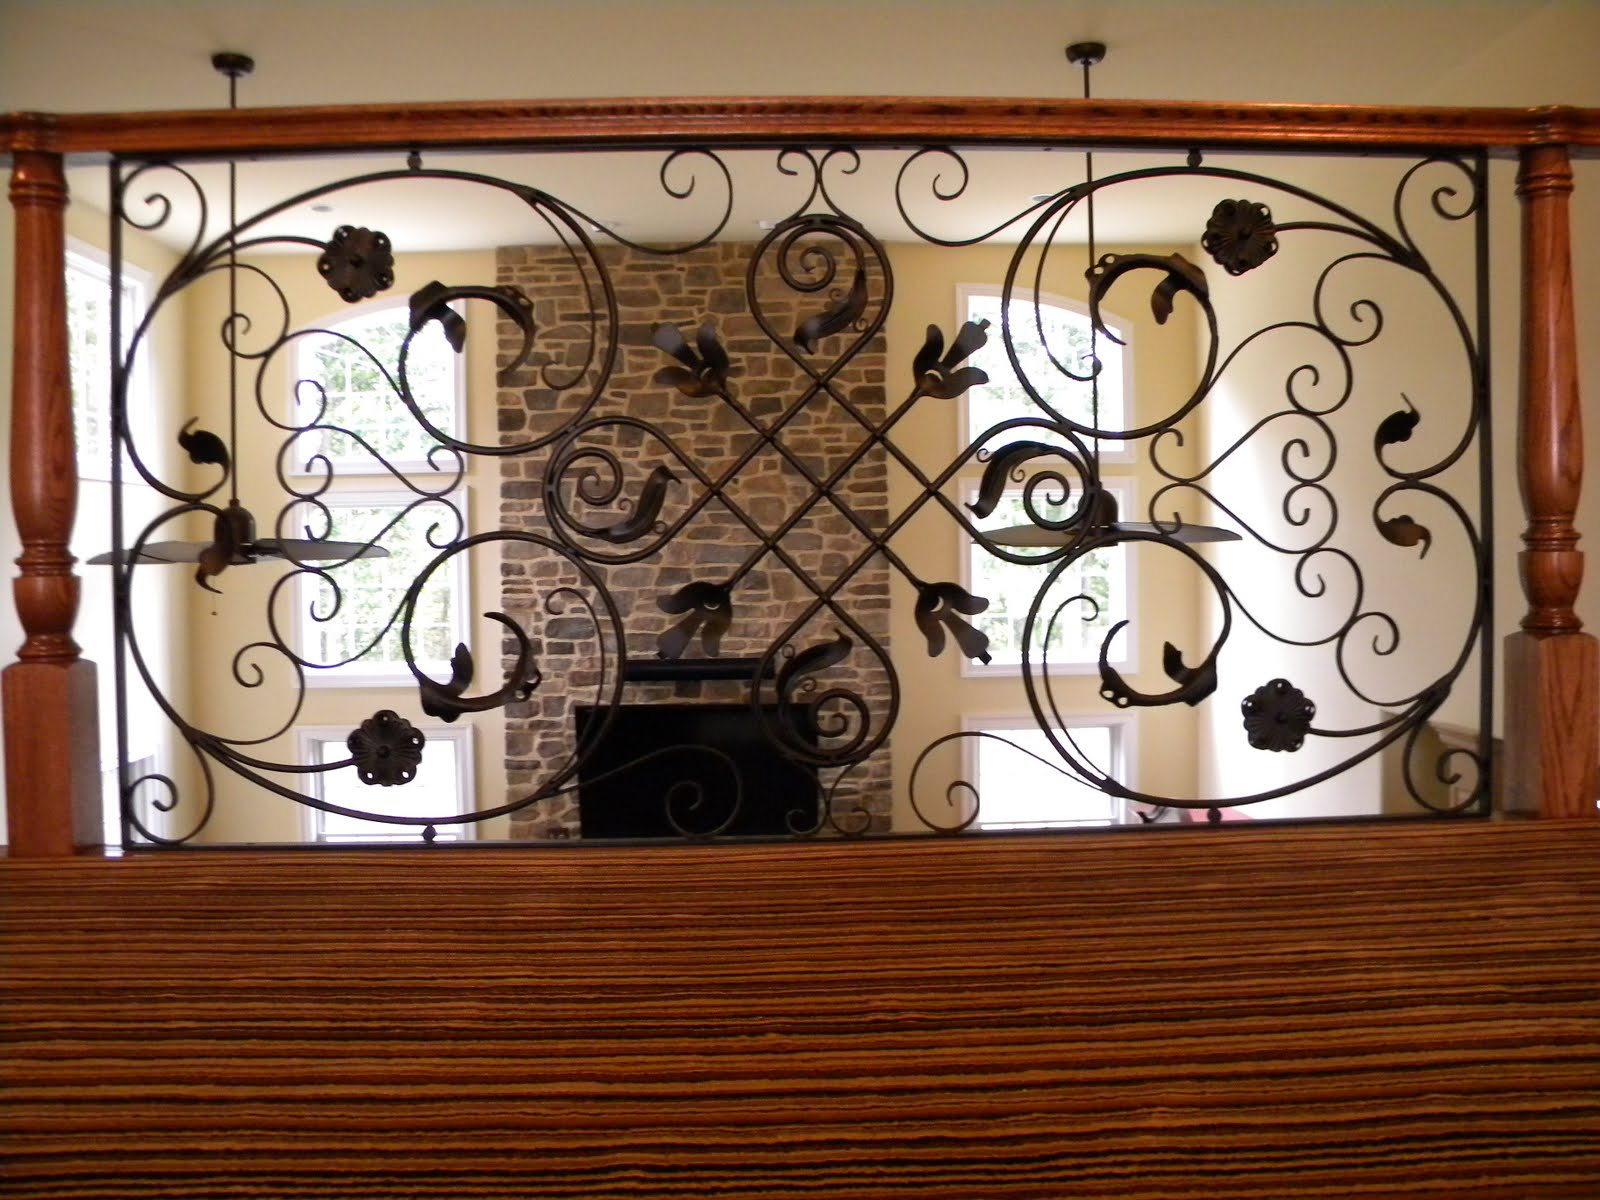 Ornamental railing panels - As You Can See This Decorative Panel Is Used As The Focal Point Of This Balcony Rail Overlooking The Family Room